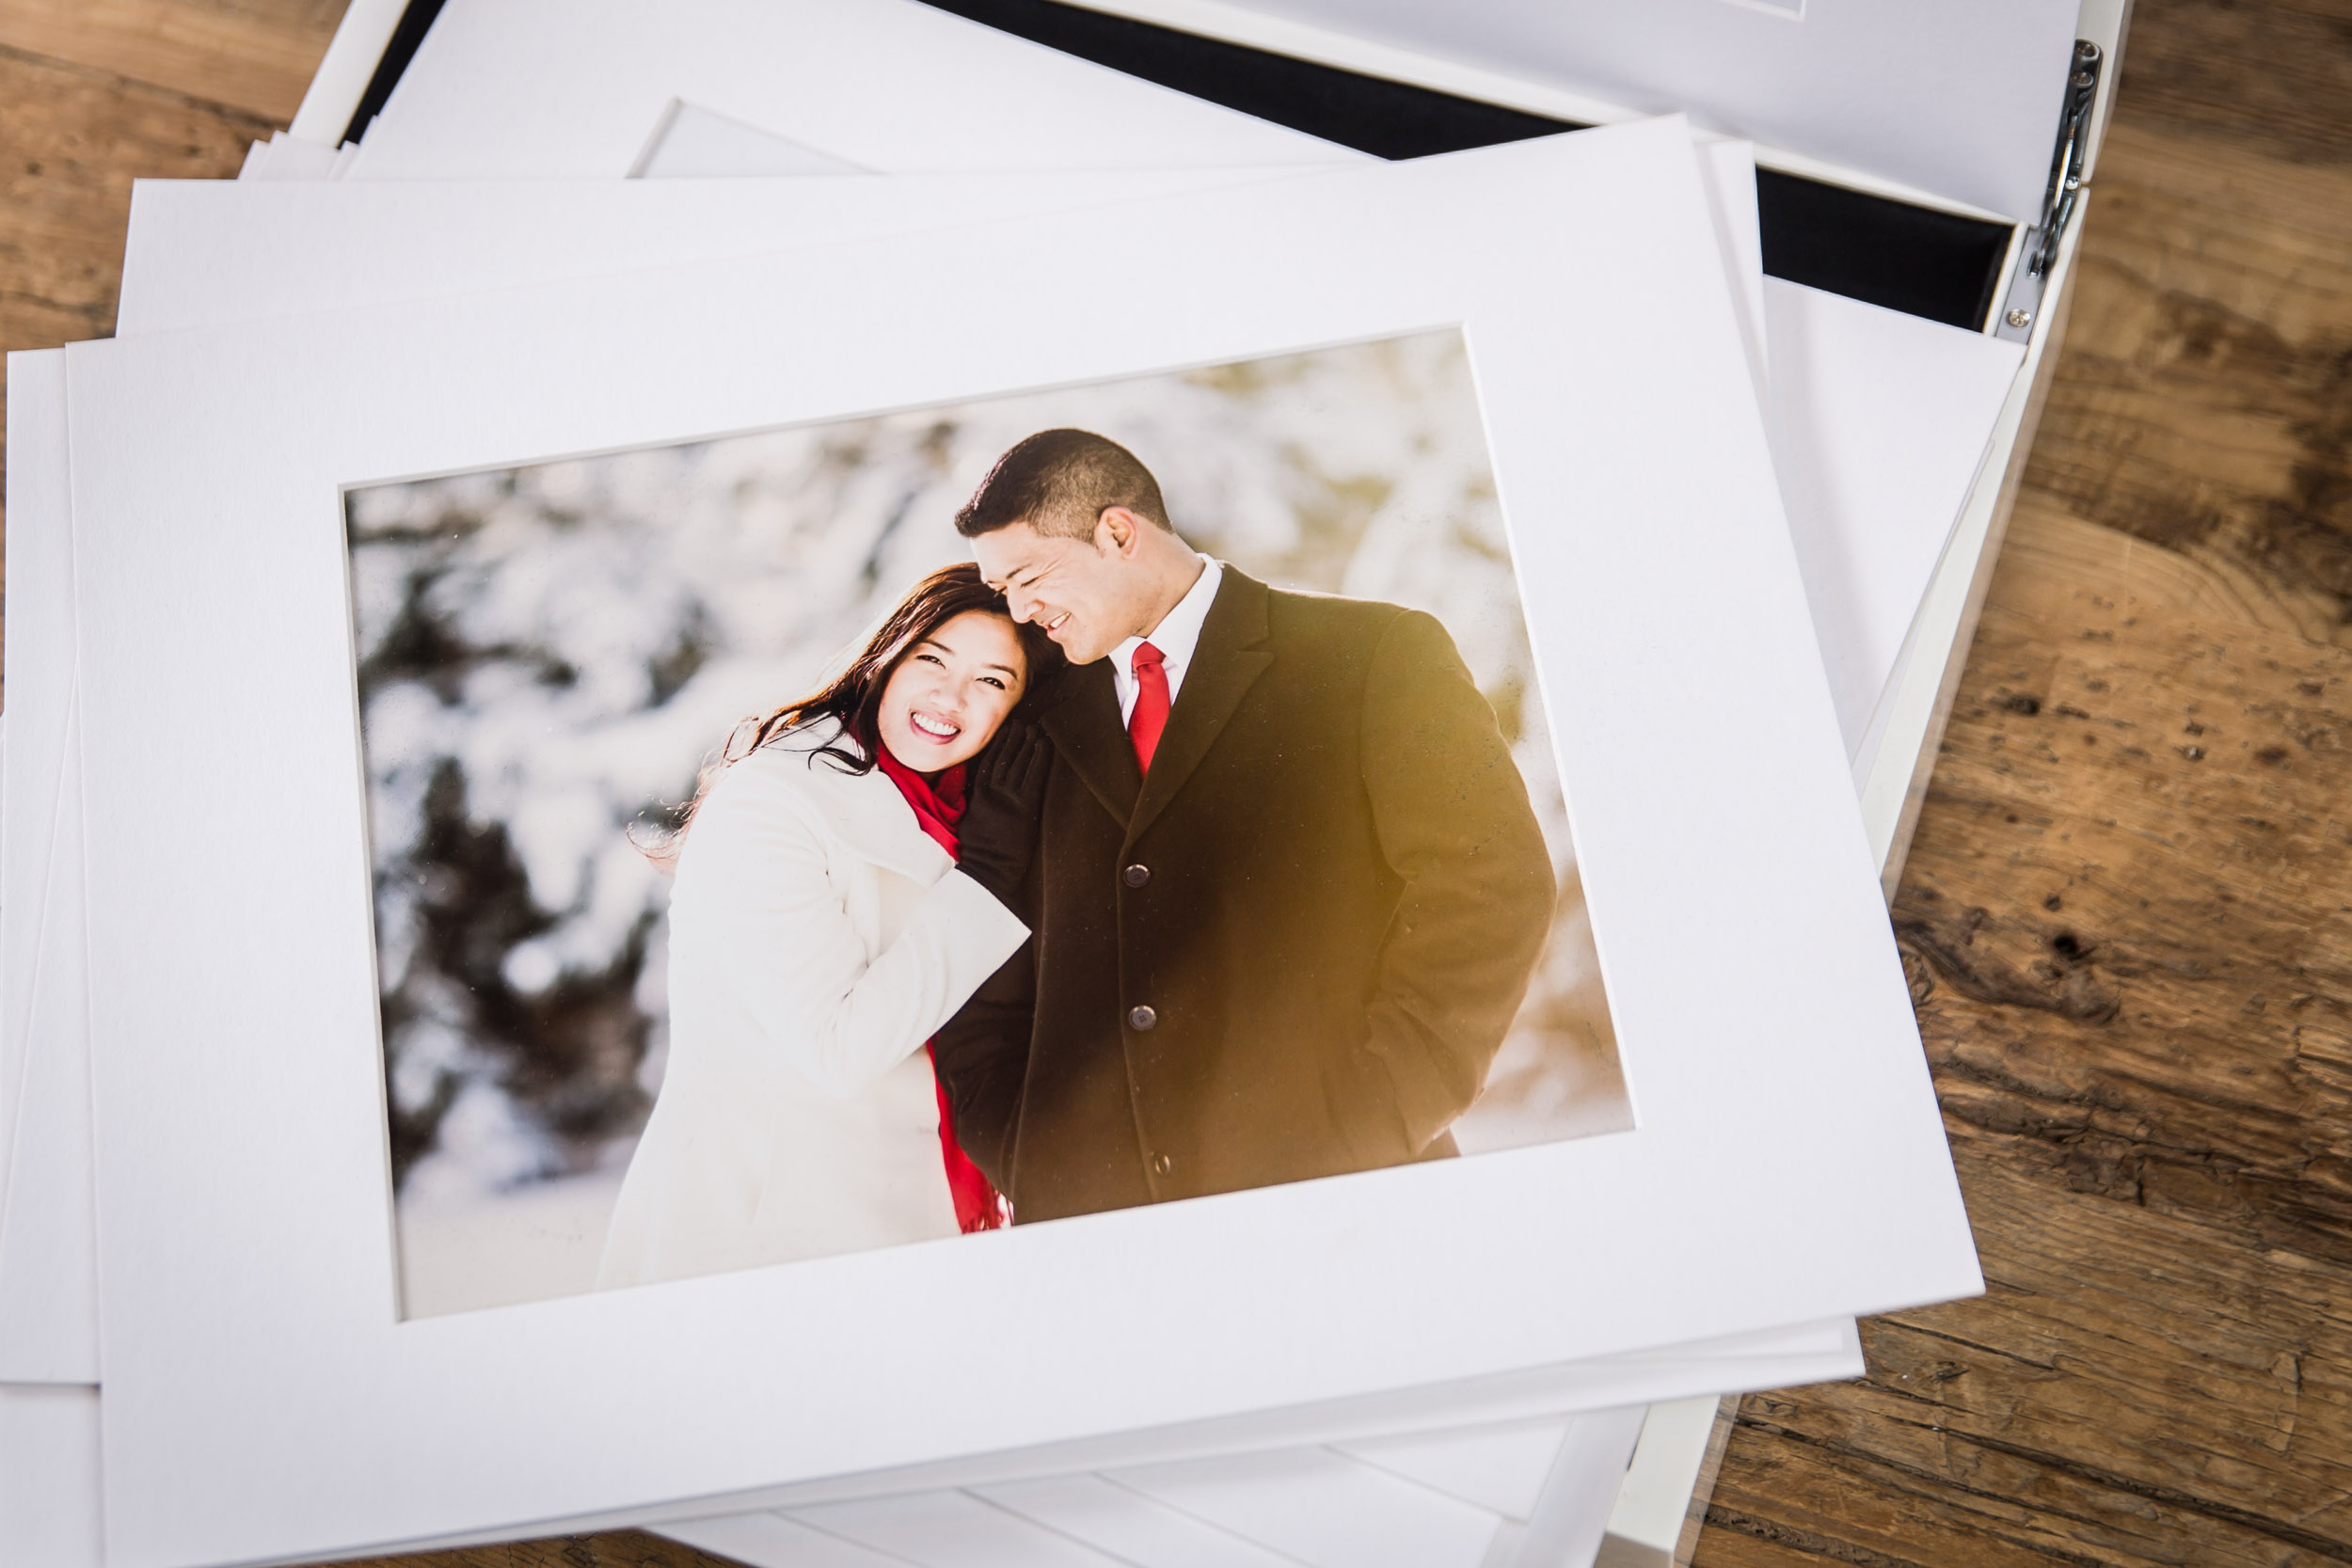 - Portrait Box's Include a set of 15 professionally printed 8x10 photographs with a 2